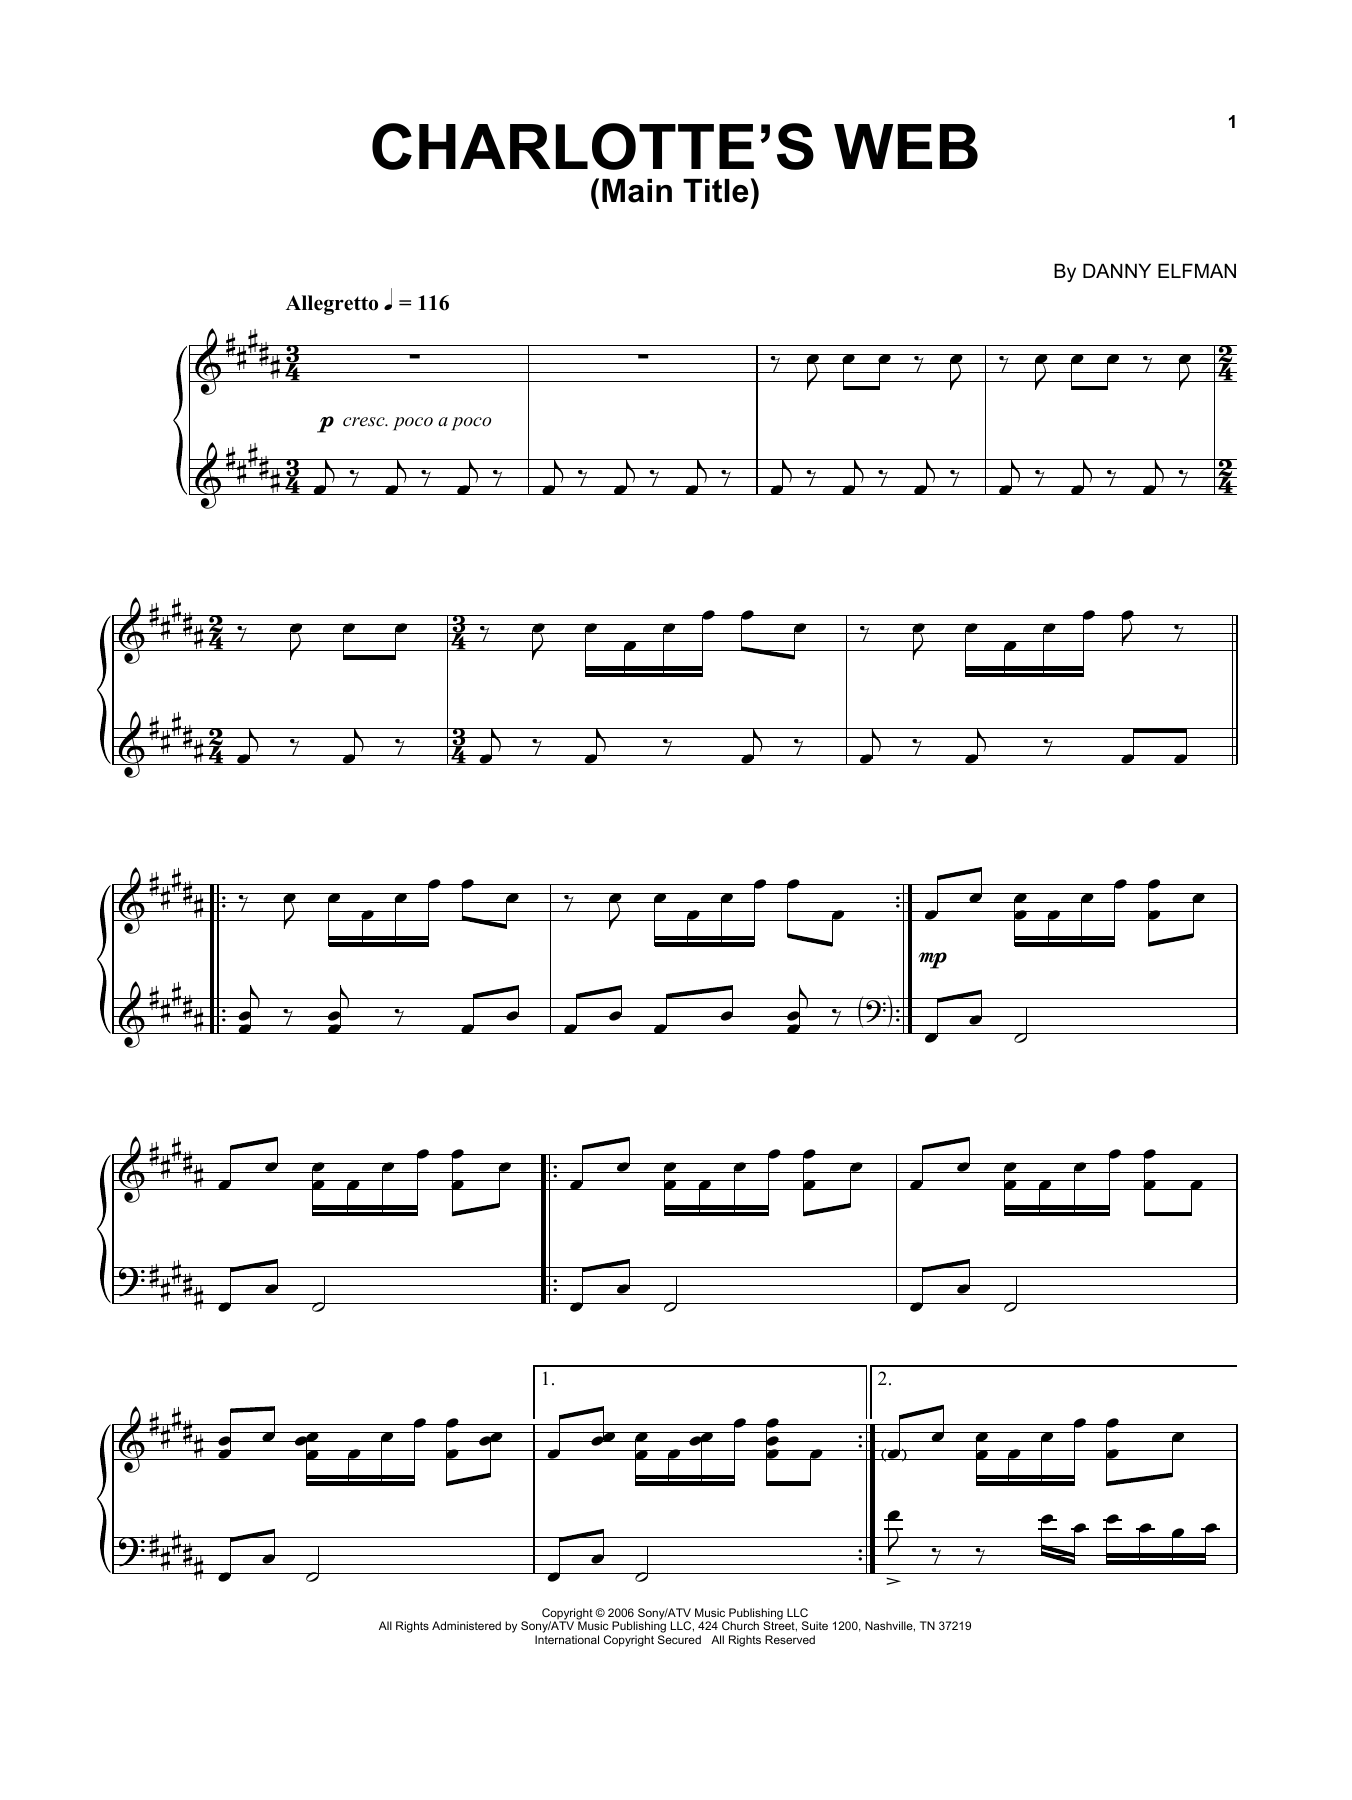 Danny Elfman Charlotte's Web Main Title sheet music notes and chords